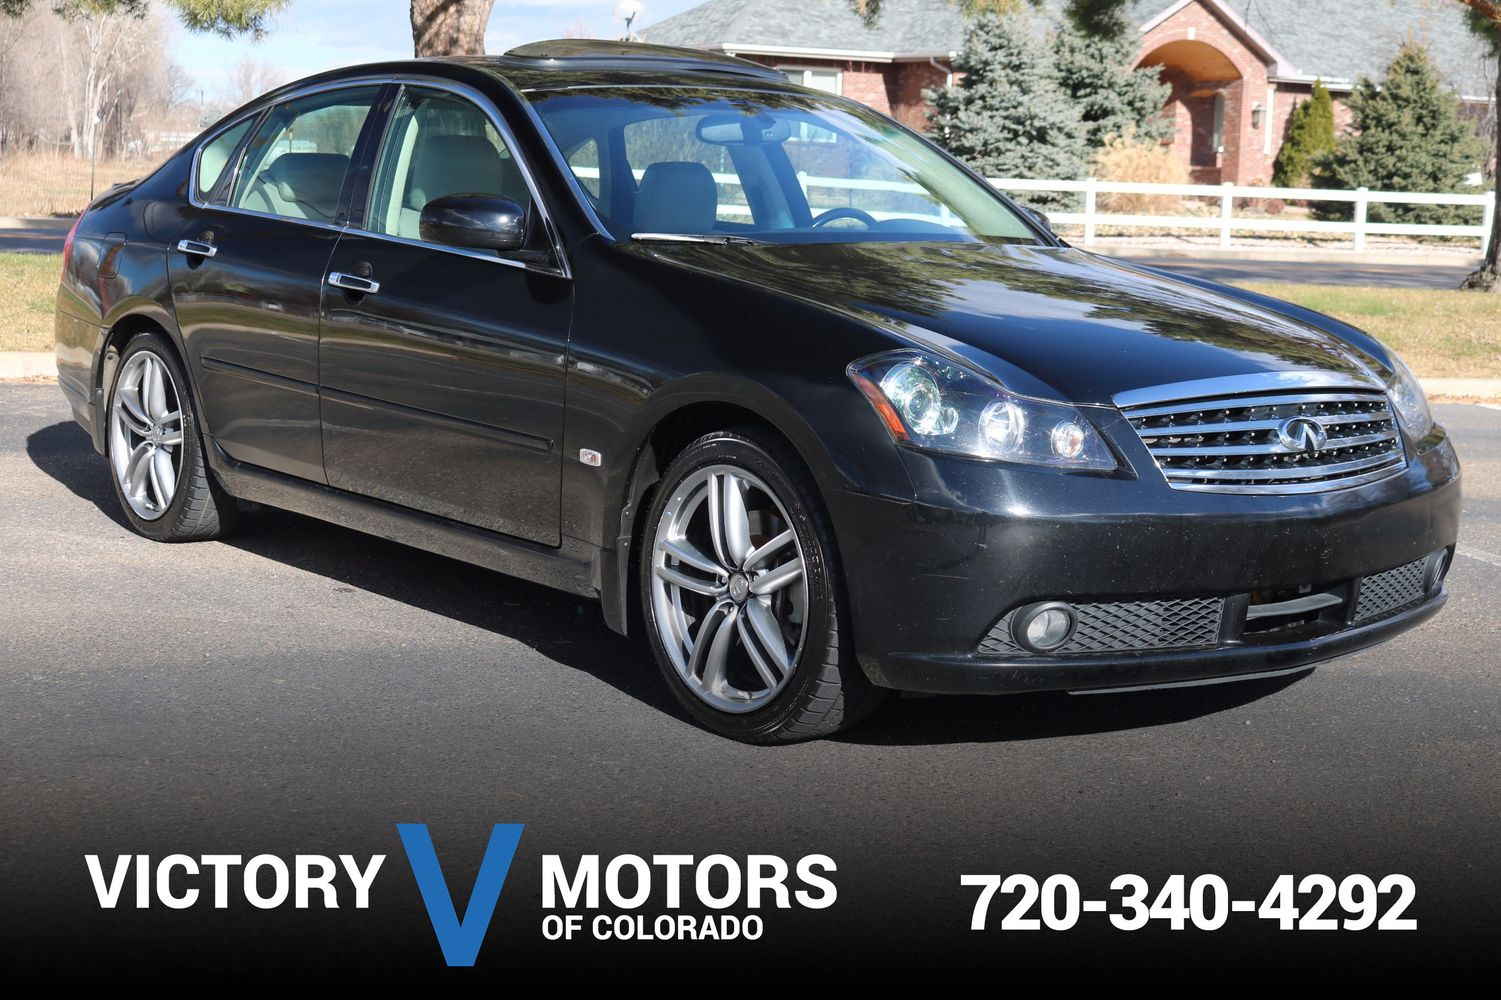 2006 Infiniti M35 Victory Motors Of Colorado Remote Starter For